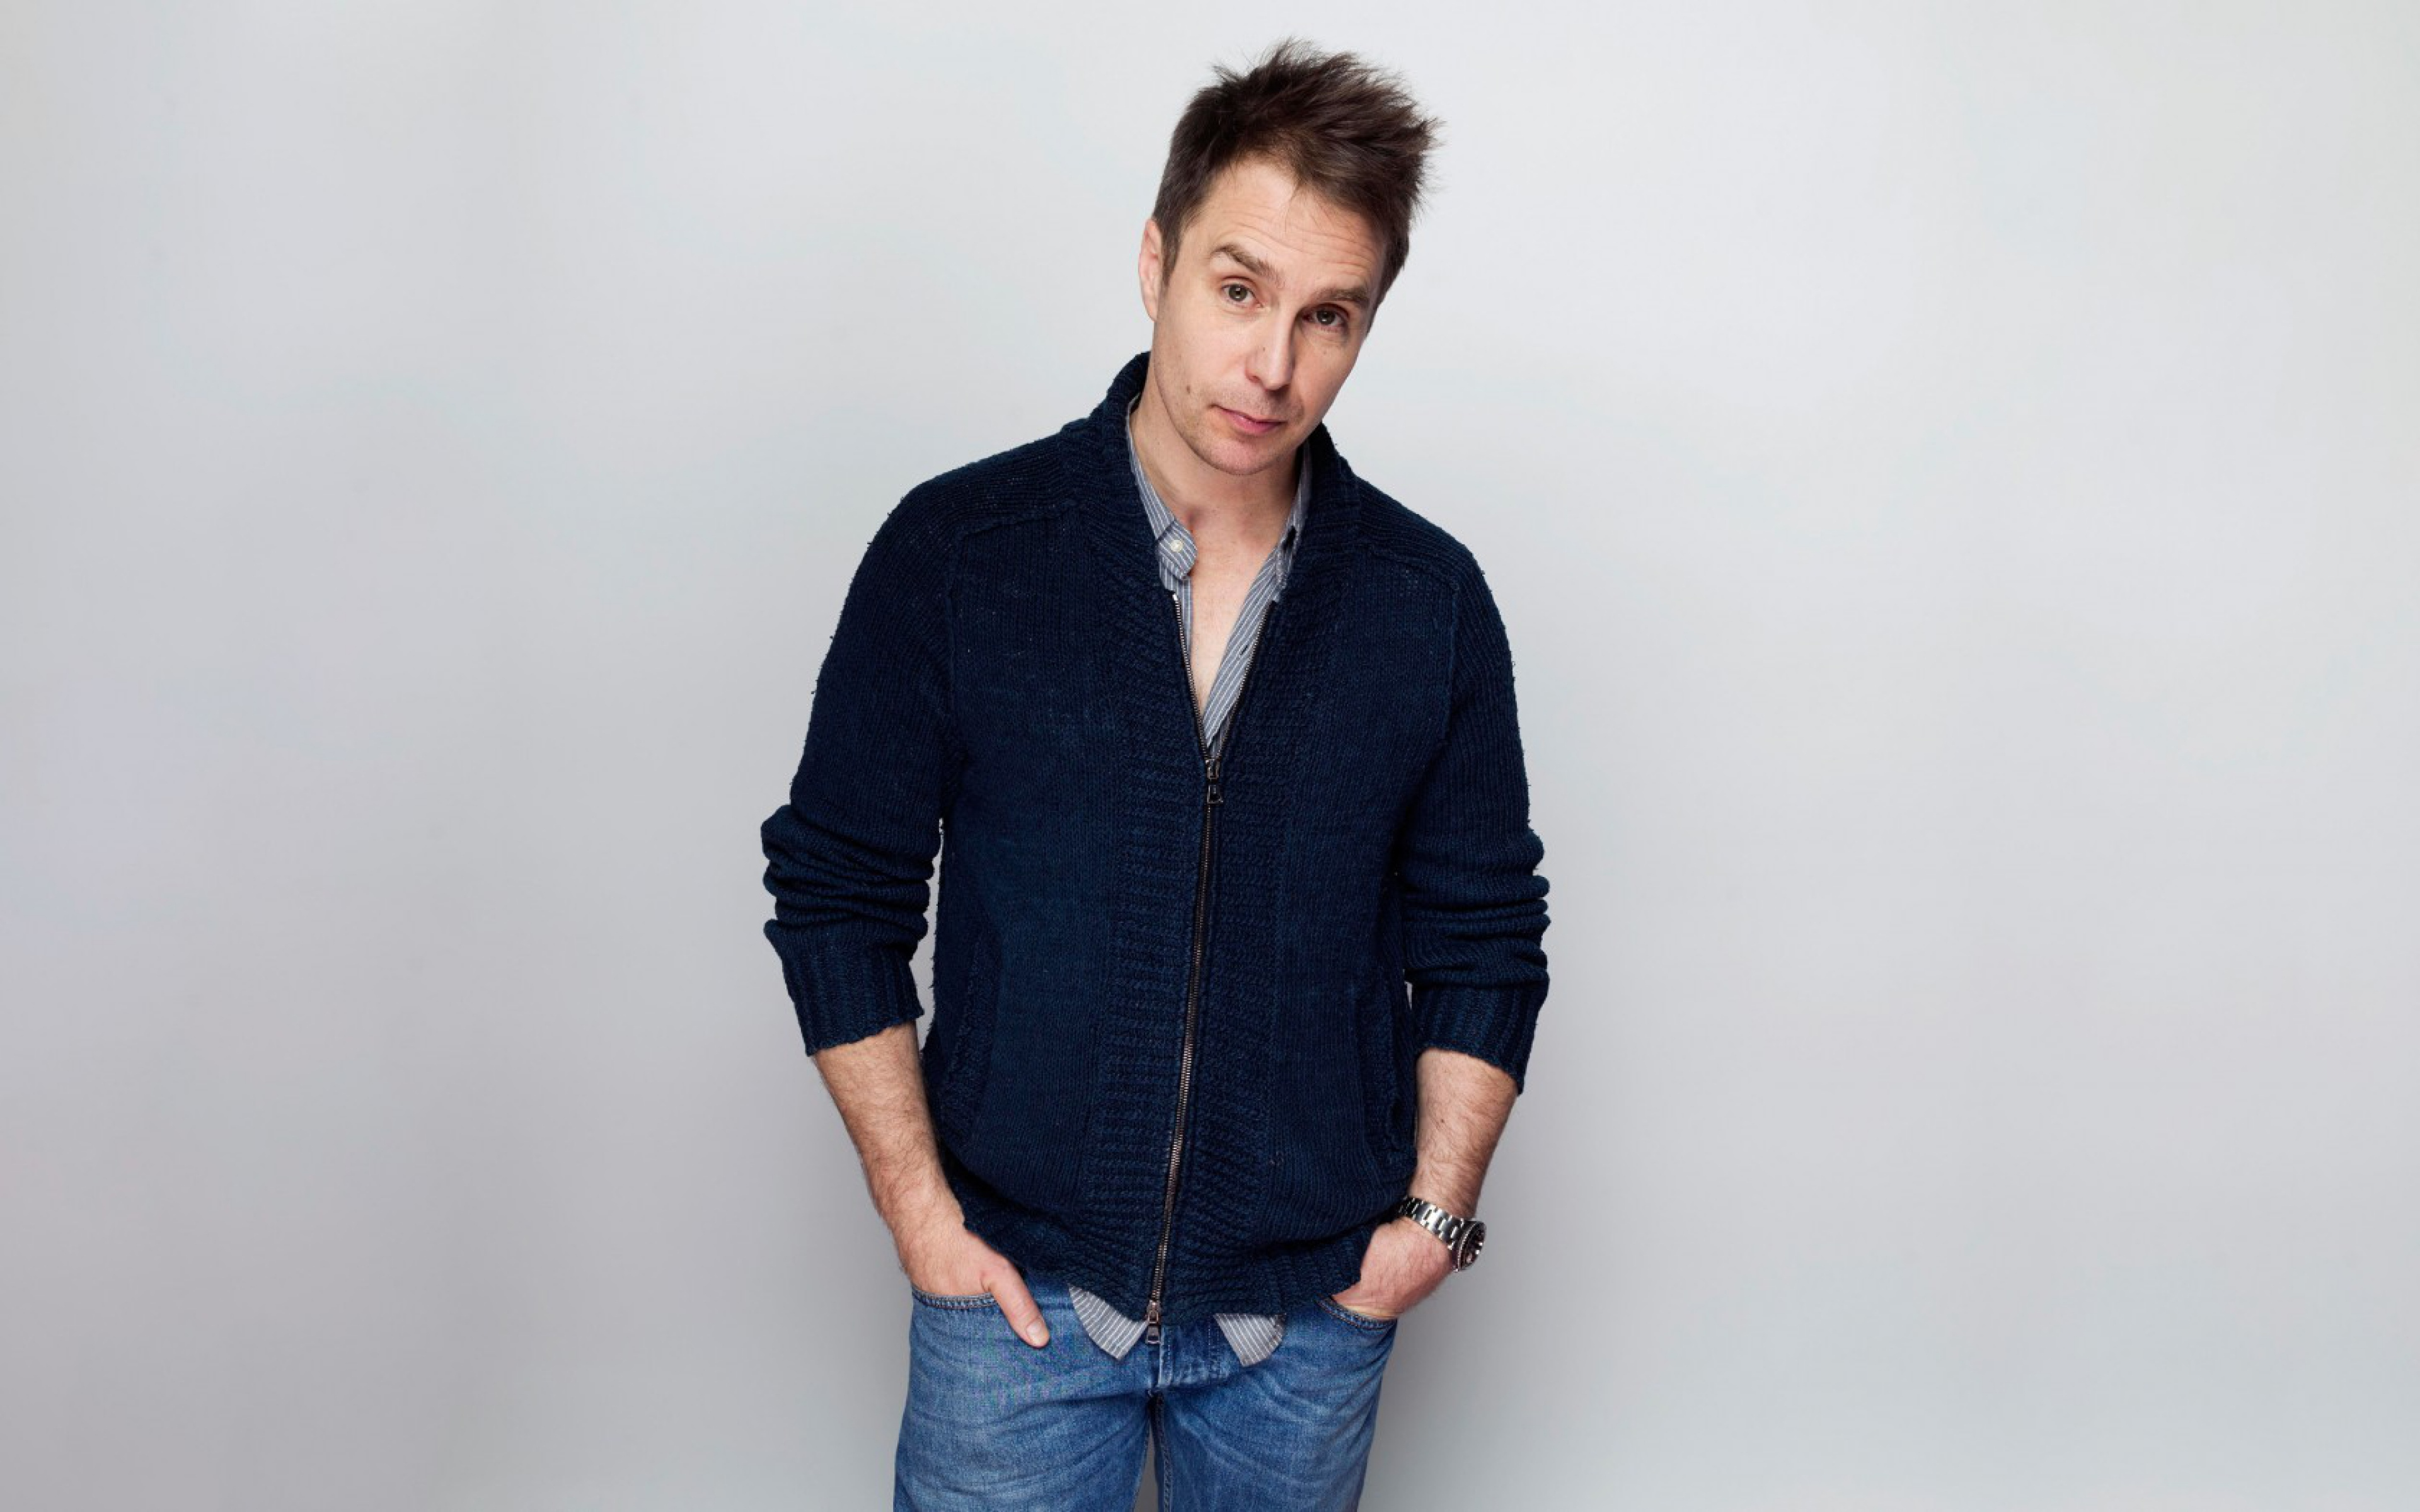 3840x2400 - Sam Rockwell Wallpapers 9